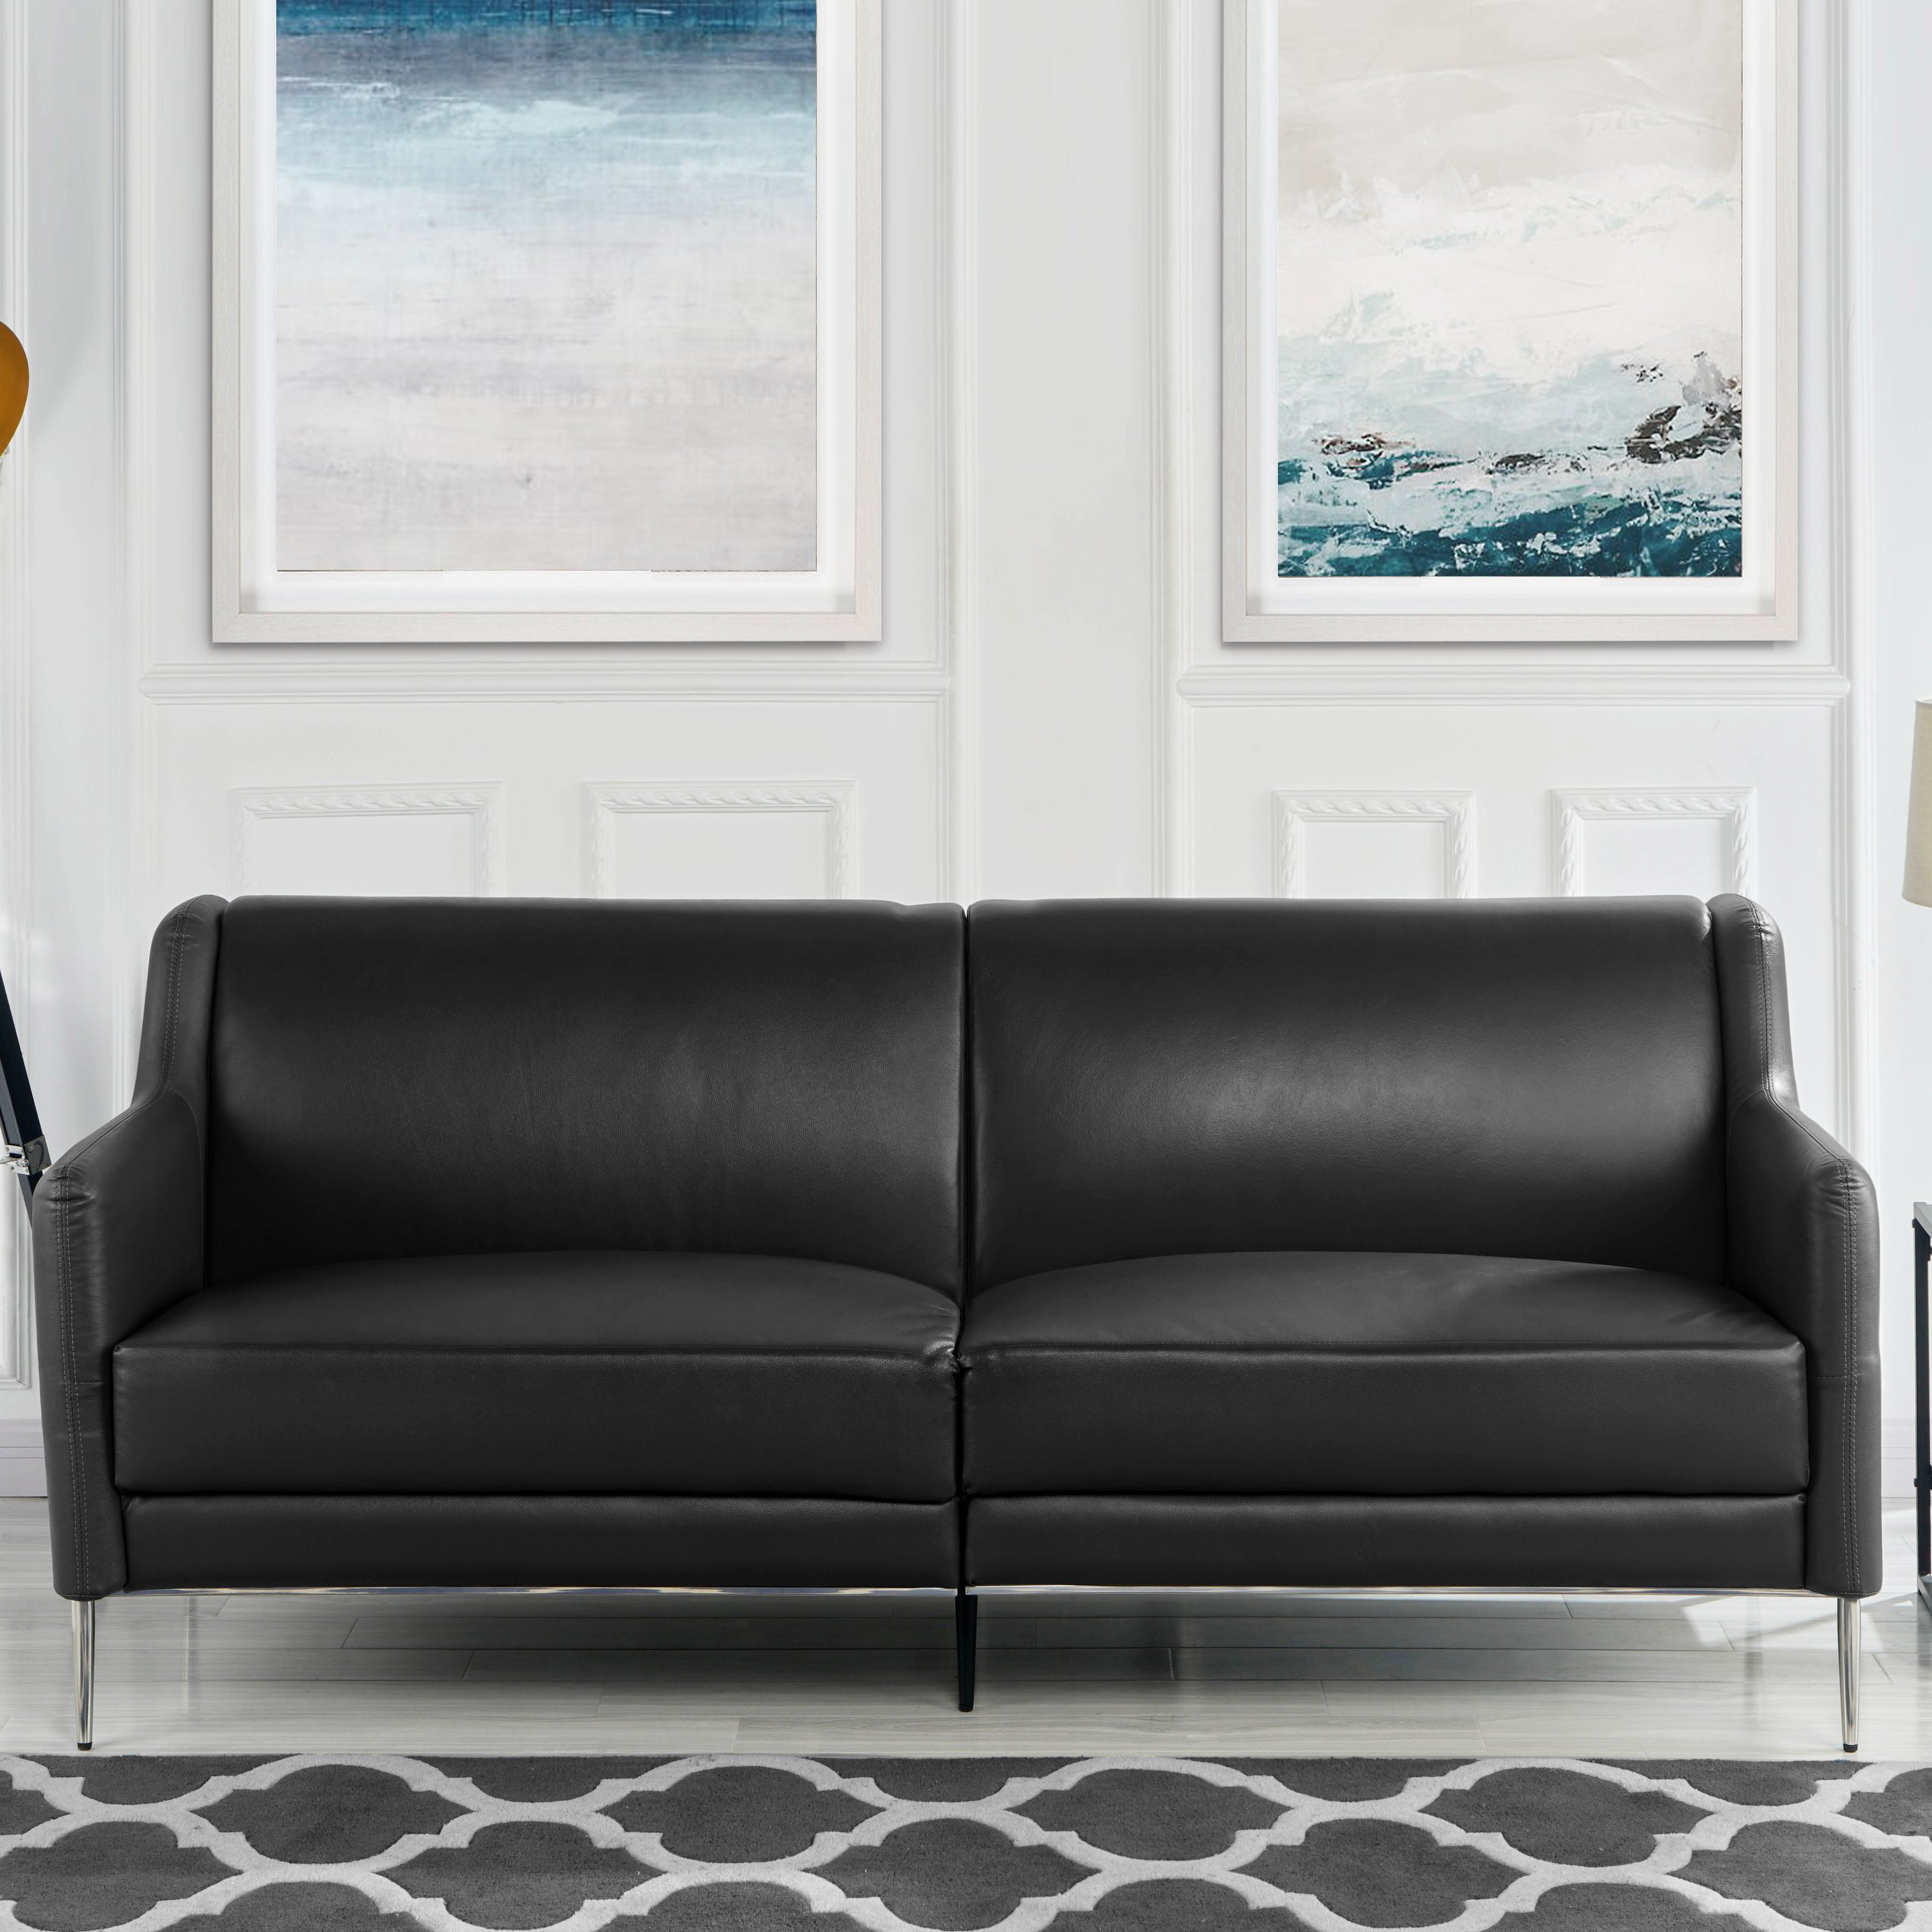 Details About Mid Century Style Leather Sofa 77 1 Inches Sleek Living Room Couch Black